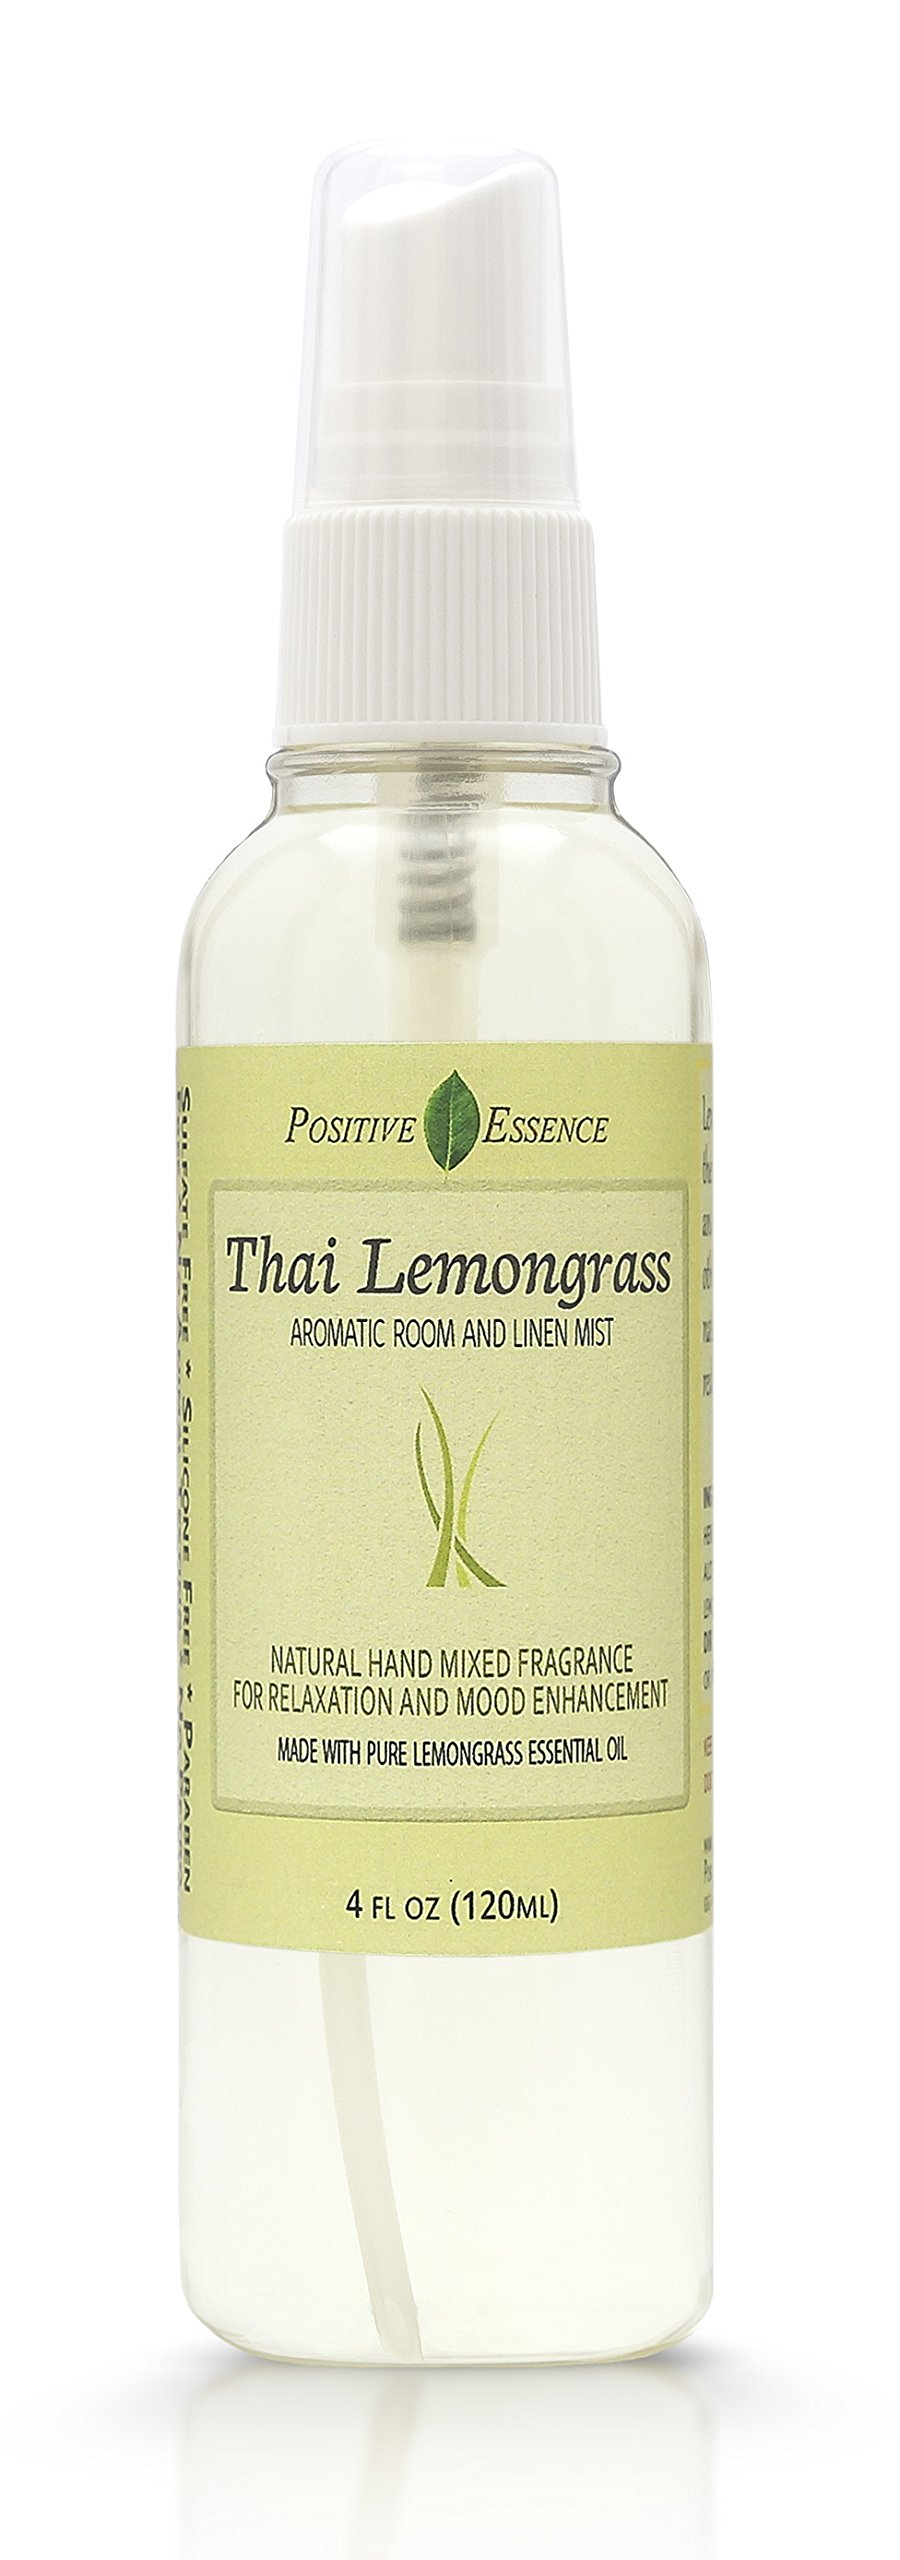 Positive Essence Thai Lemongrass Linen & Room Spray - Natural Aromatic Mist Made with PURE LEMONGRASS ESSENTIAL OIL - Relax Your Body & Mind – Perfect as a Bathroom Air Freshener Odor Eliminator by by Positive Essence